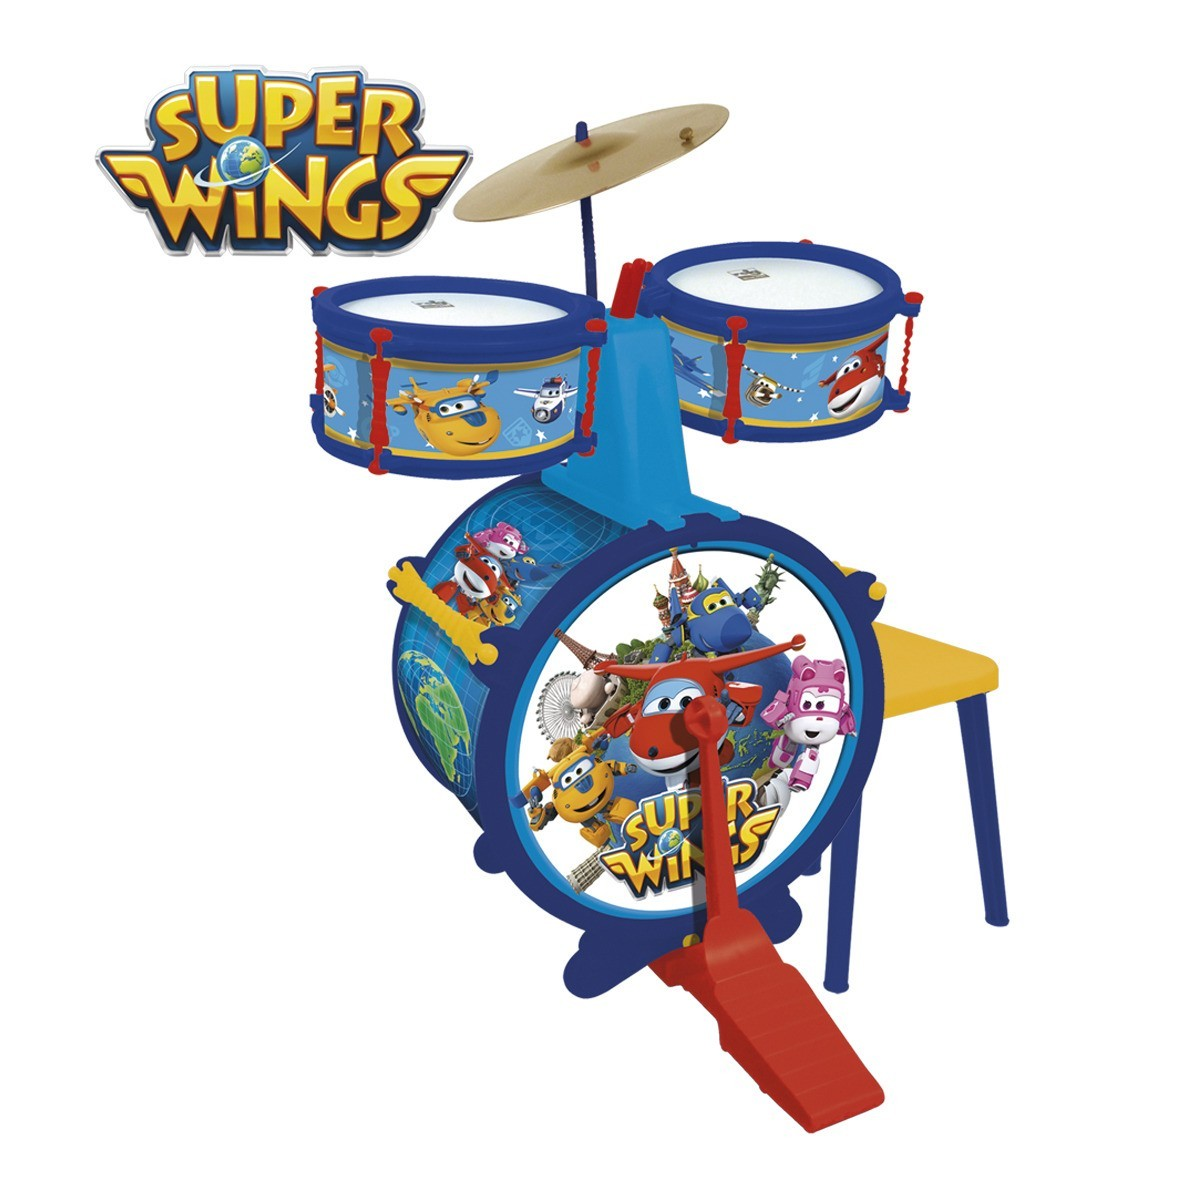 REIG 2111 Super Wings perkusja